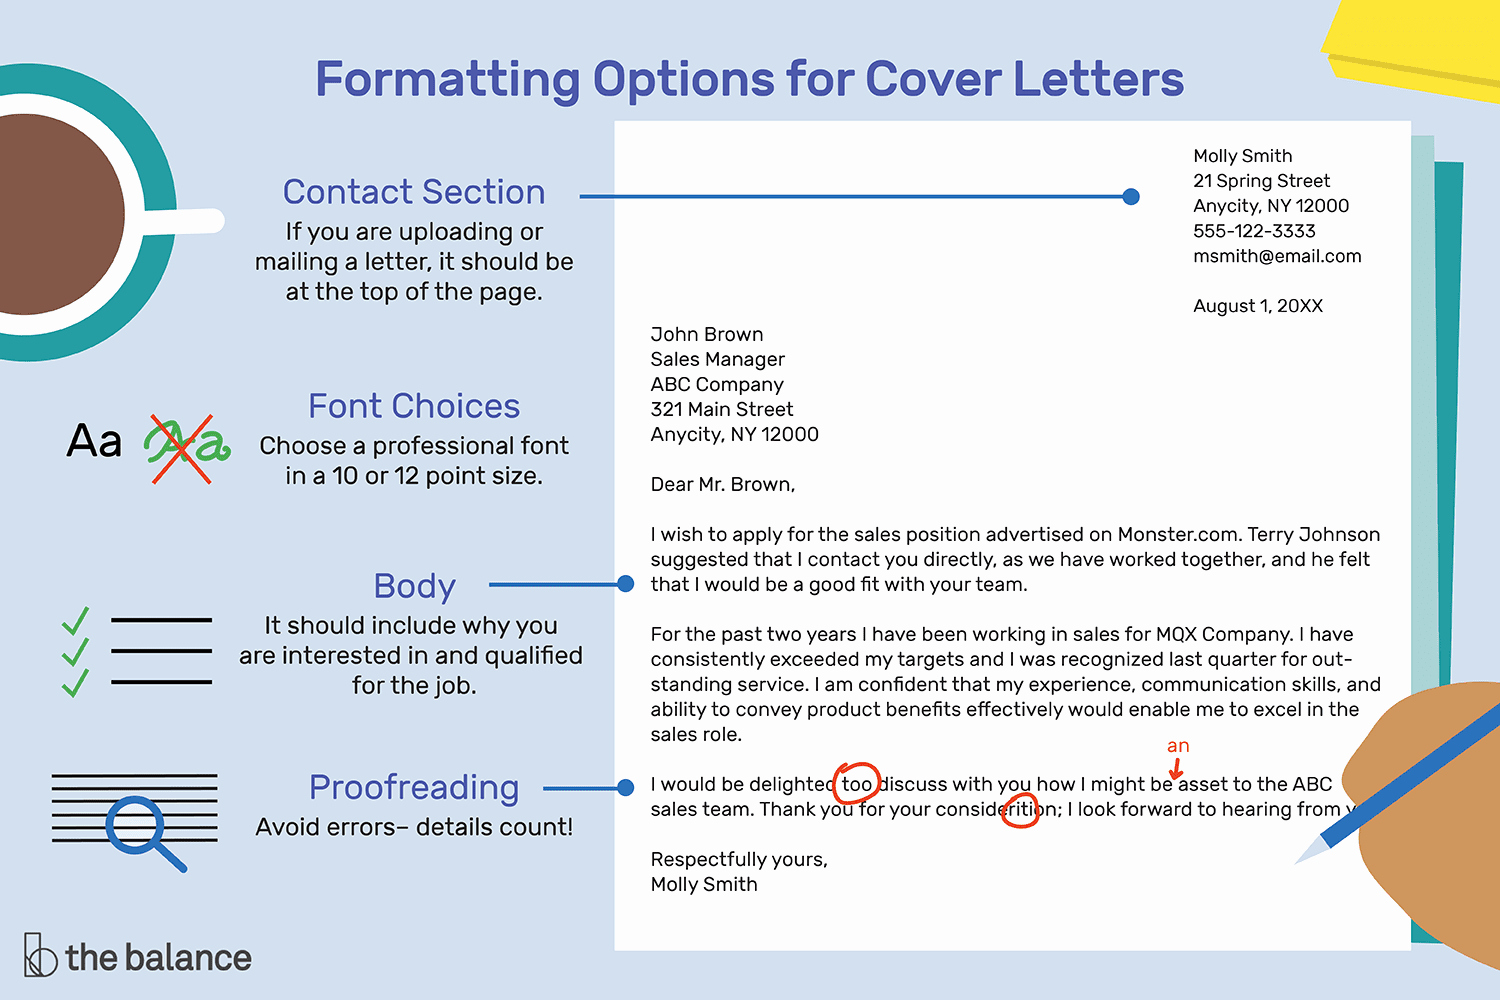 Emailed Cover Letter format Lovely How to format A Cover Letter